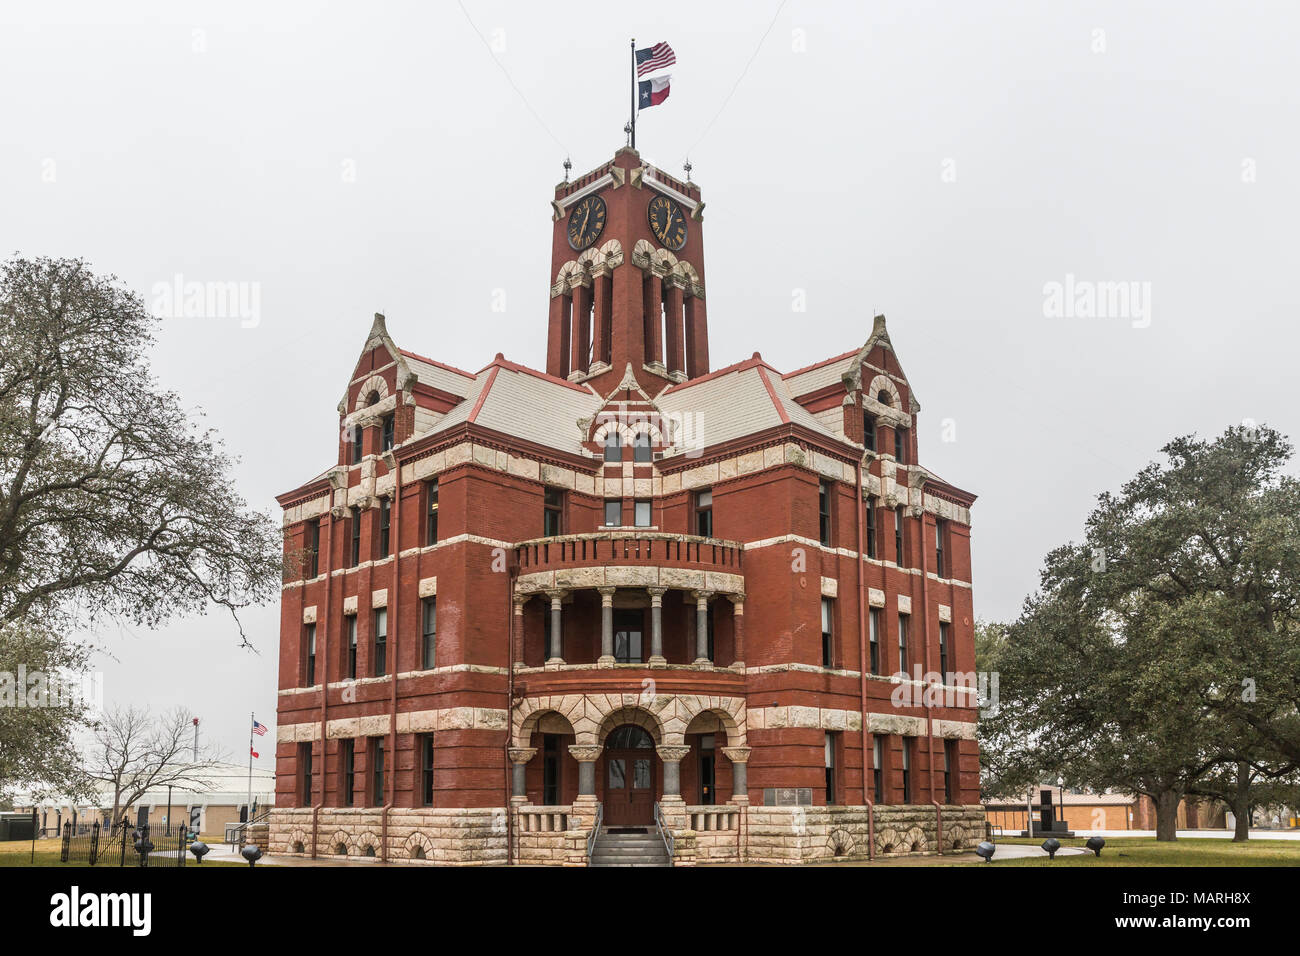 Historical Lee County courthouse in Giddings Texas - Stock Image